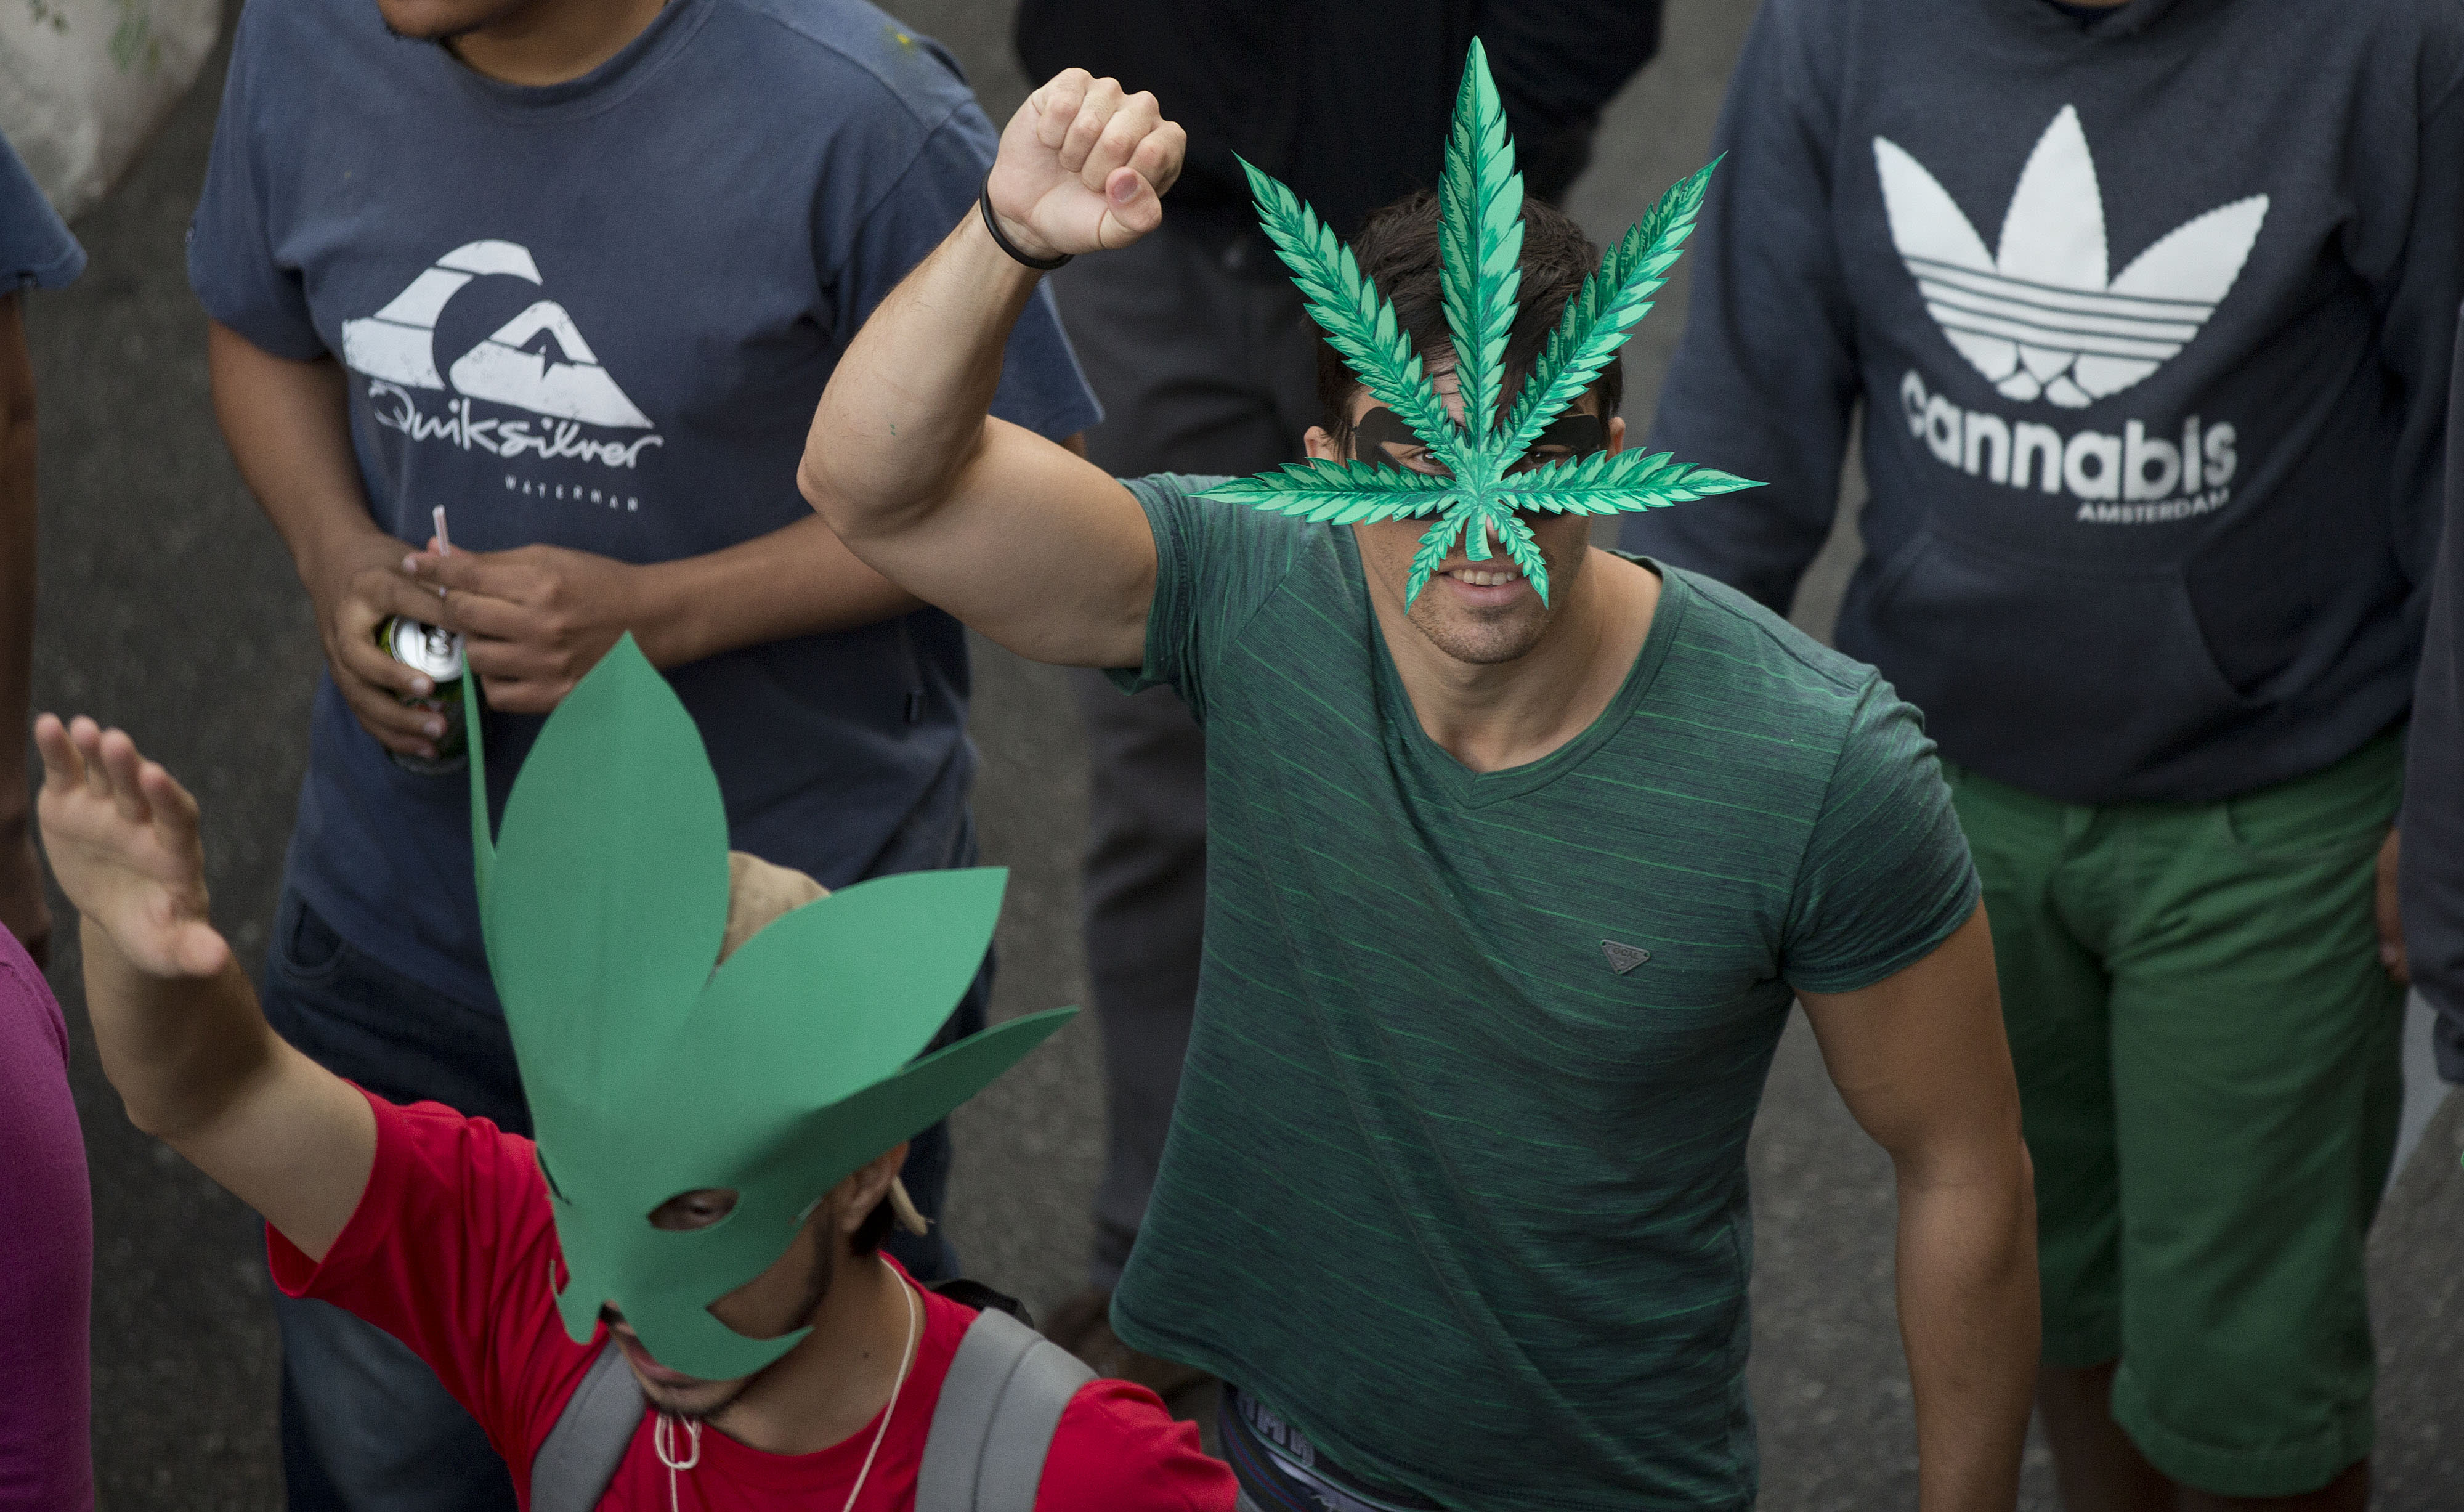 Demonstrators wear masks in the shape of a cannabis leaf at a legalization of marijuana march in Sao Paulo, Brazil, Saturday, April 26, 2014. Brazilian police say about 2,000 people have gathered in downtown Sao Paulo in a demonstration demanding the legalization of the production and sale of marijuana in Latin America's largest country. (AP Photo/Andre Penner)